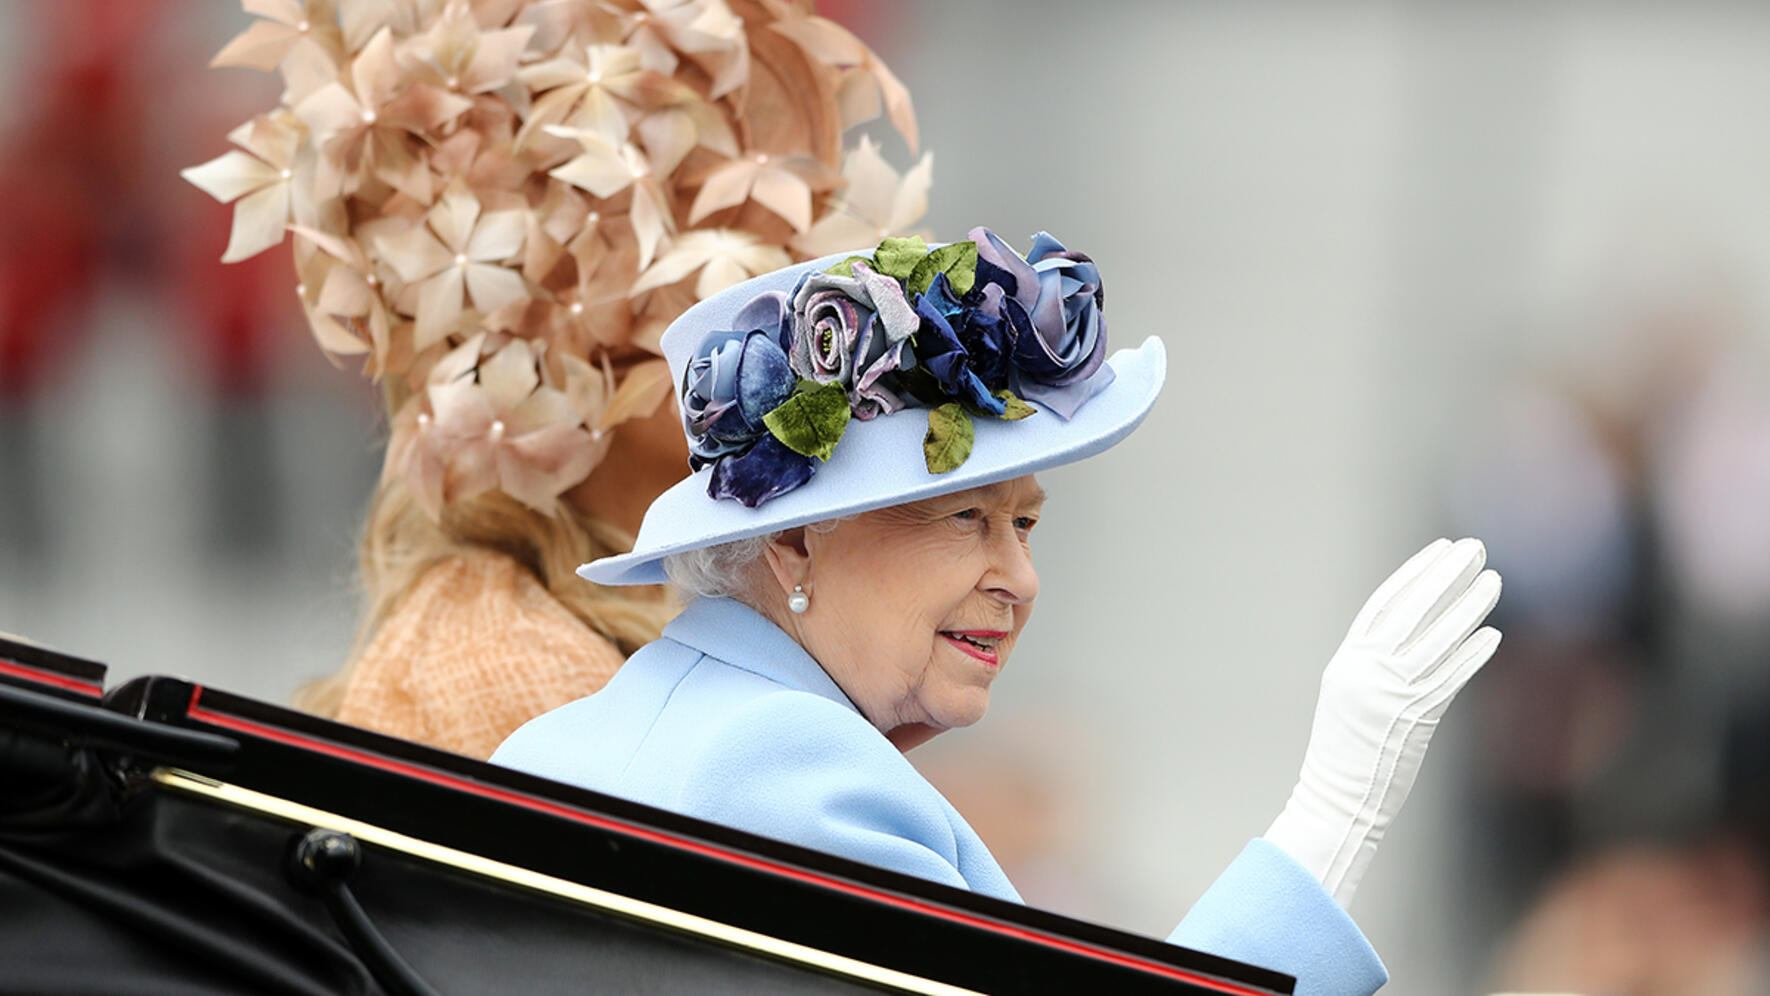 ASCOT, ENGLAND - JUNE 18: Queen Elizabeth II waves to the crowds as she arrives on day one of Royal Ascot at Ascot Racecourse on June 18, 2019 in Ascot, England. (Photo by Bryn Lennon/Getty Images for Ascot Racecourse)